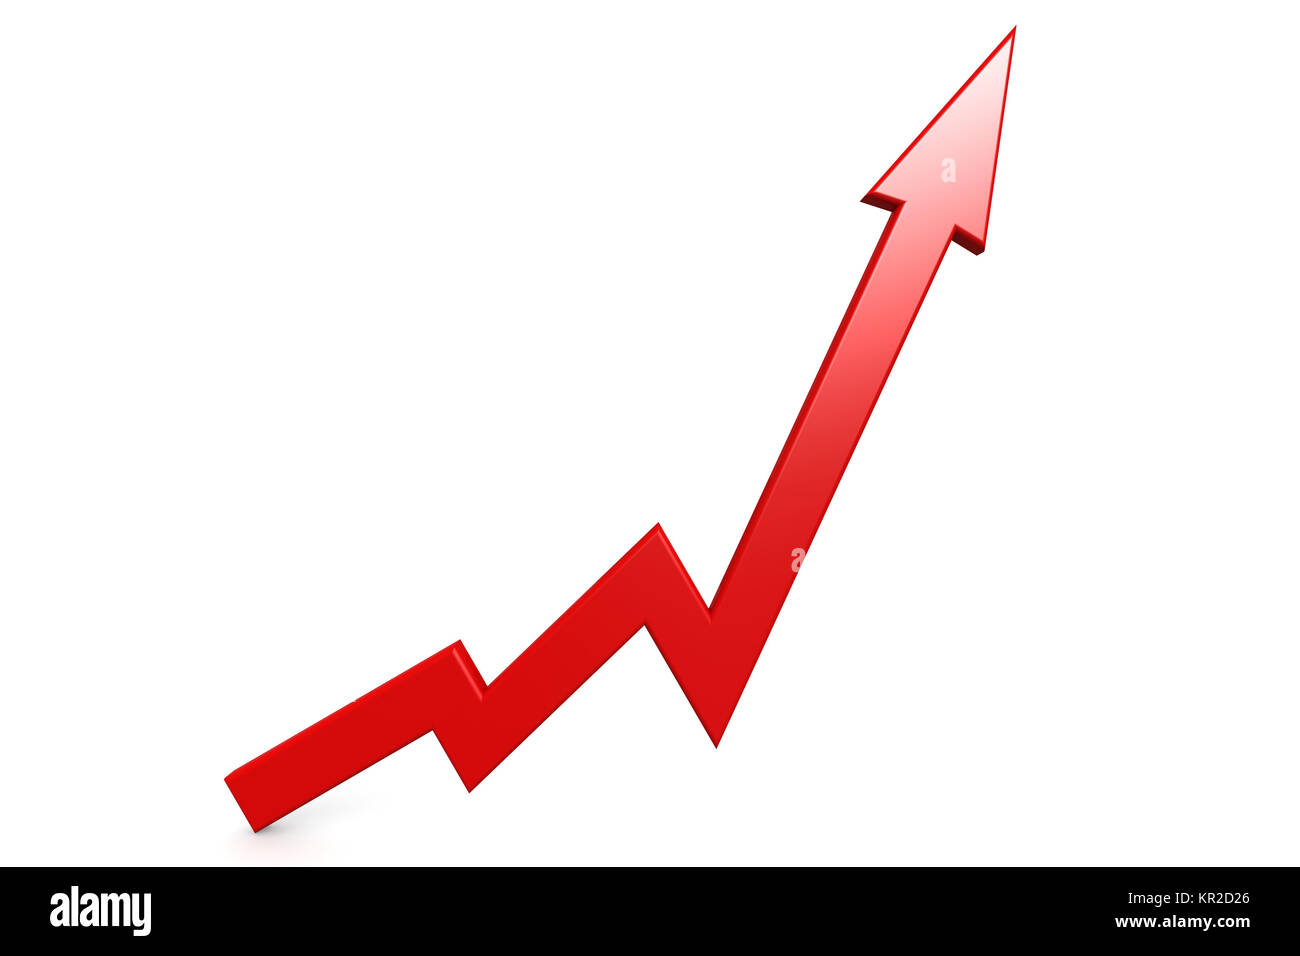 Red Arrow Point Up Stock Photo 169084558 Alamy